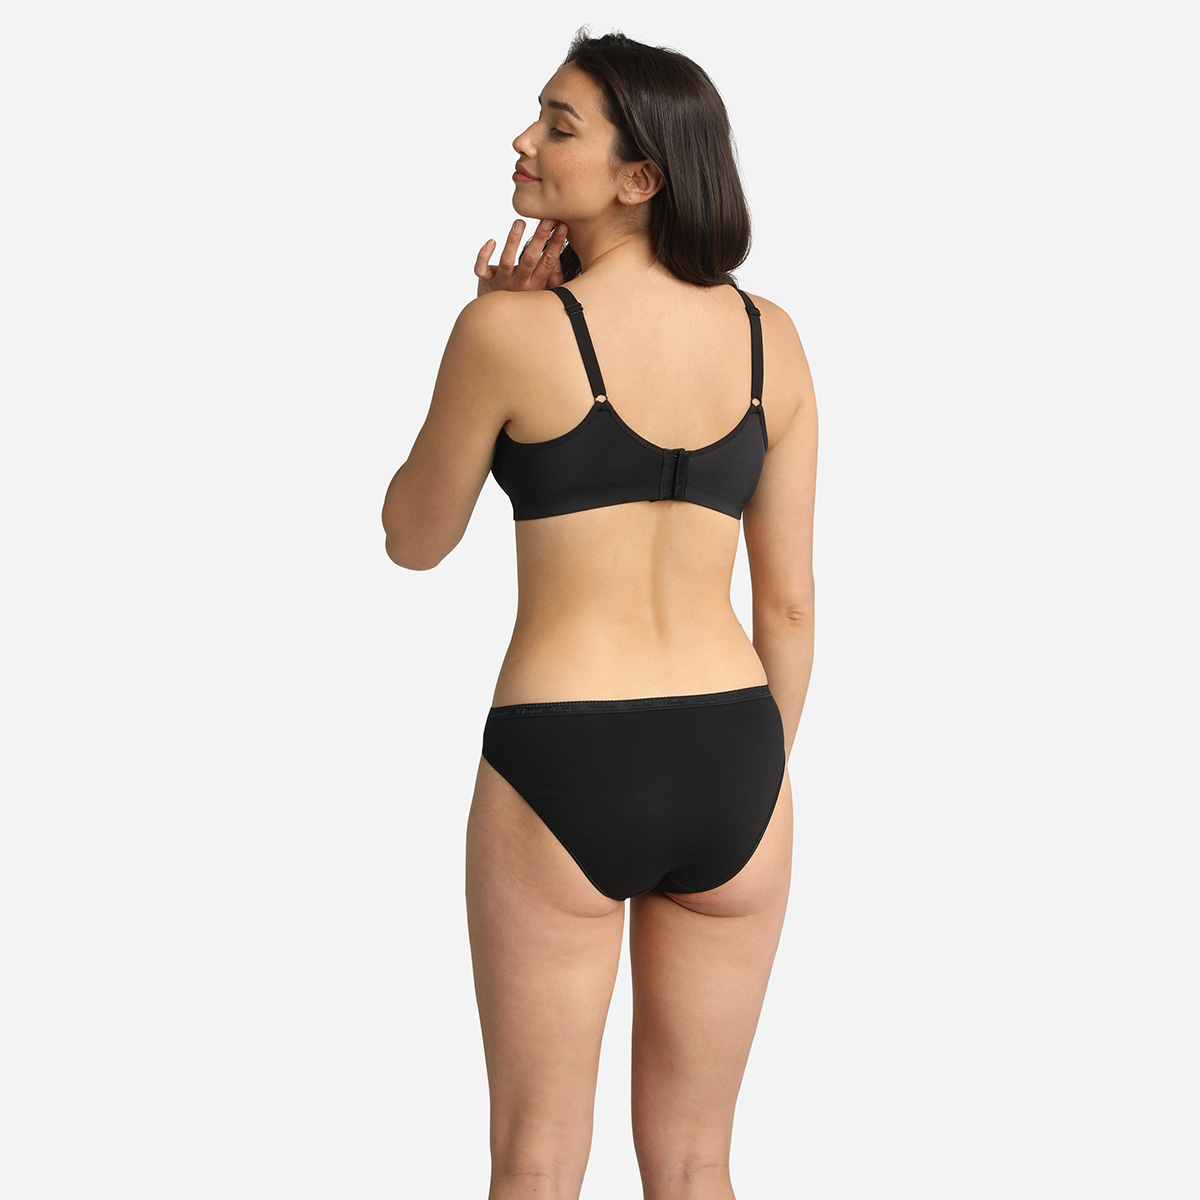 Soft Cup Bra in Black - Essential Support , , PLAYTEX